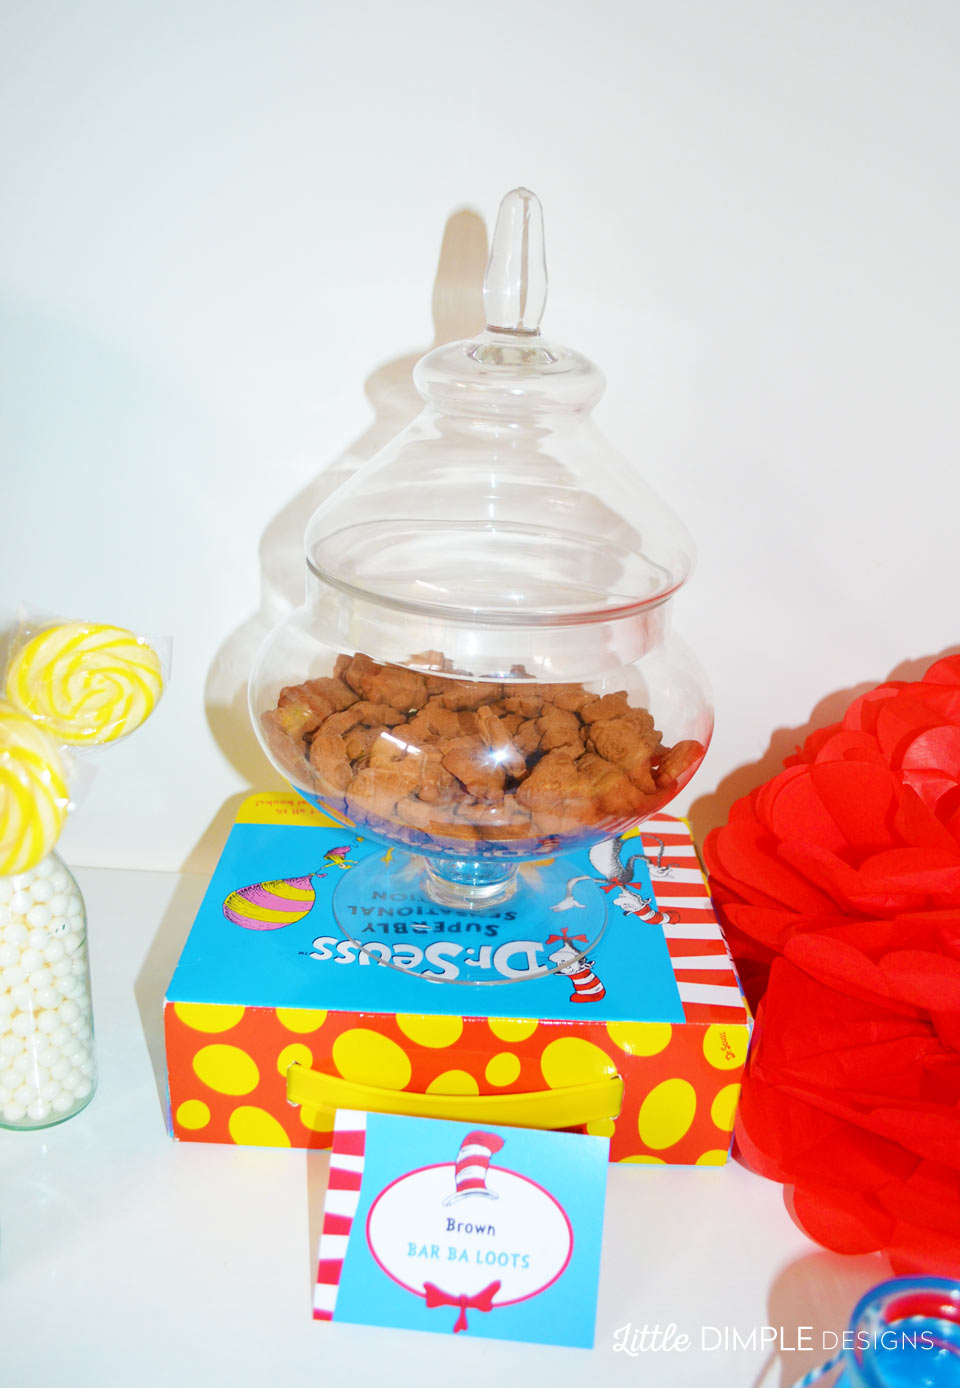 Dr Seuss Brown Bar Ba Loots Treats